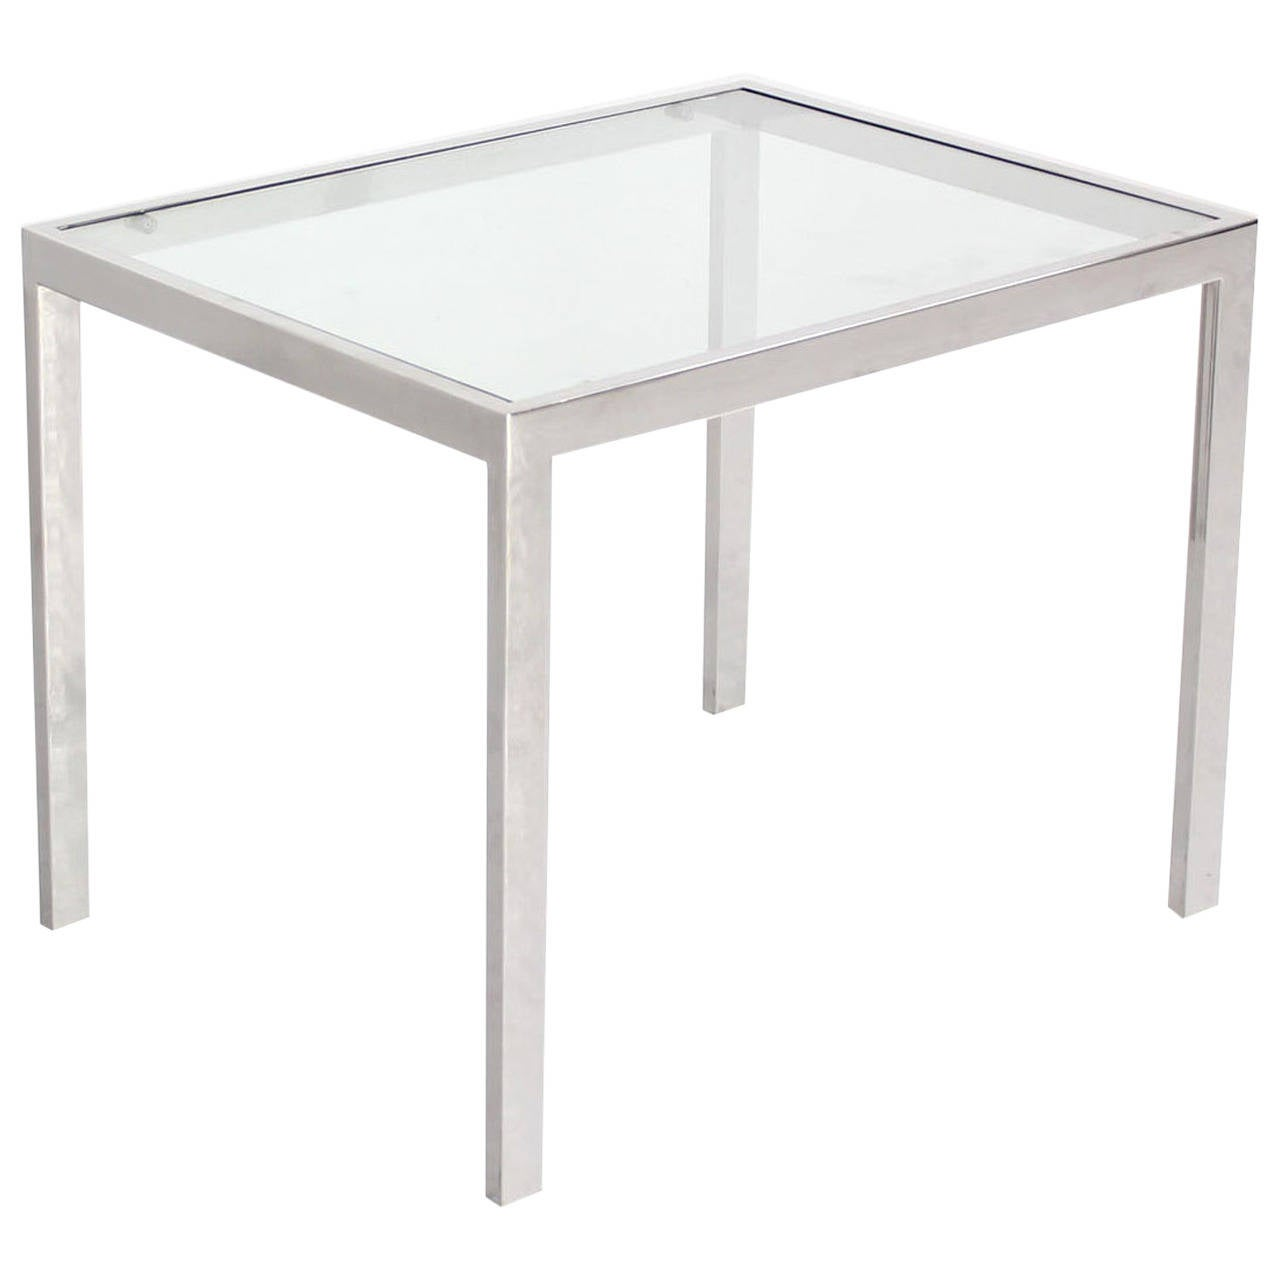 Chrome and Glass Mid-Century Modern Side Table For Sale at 1stdibs